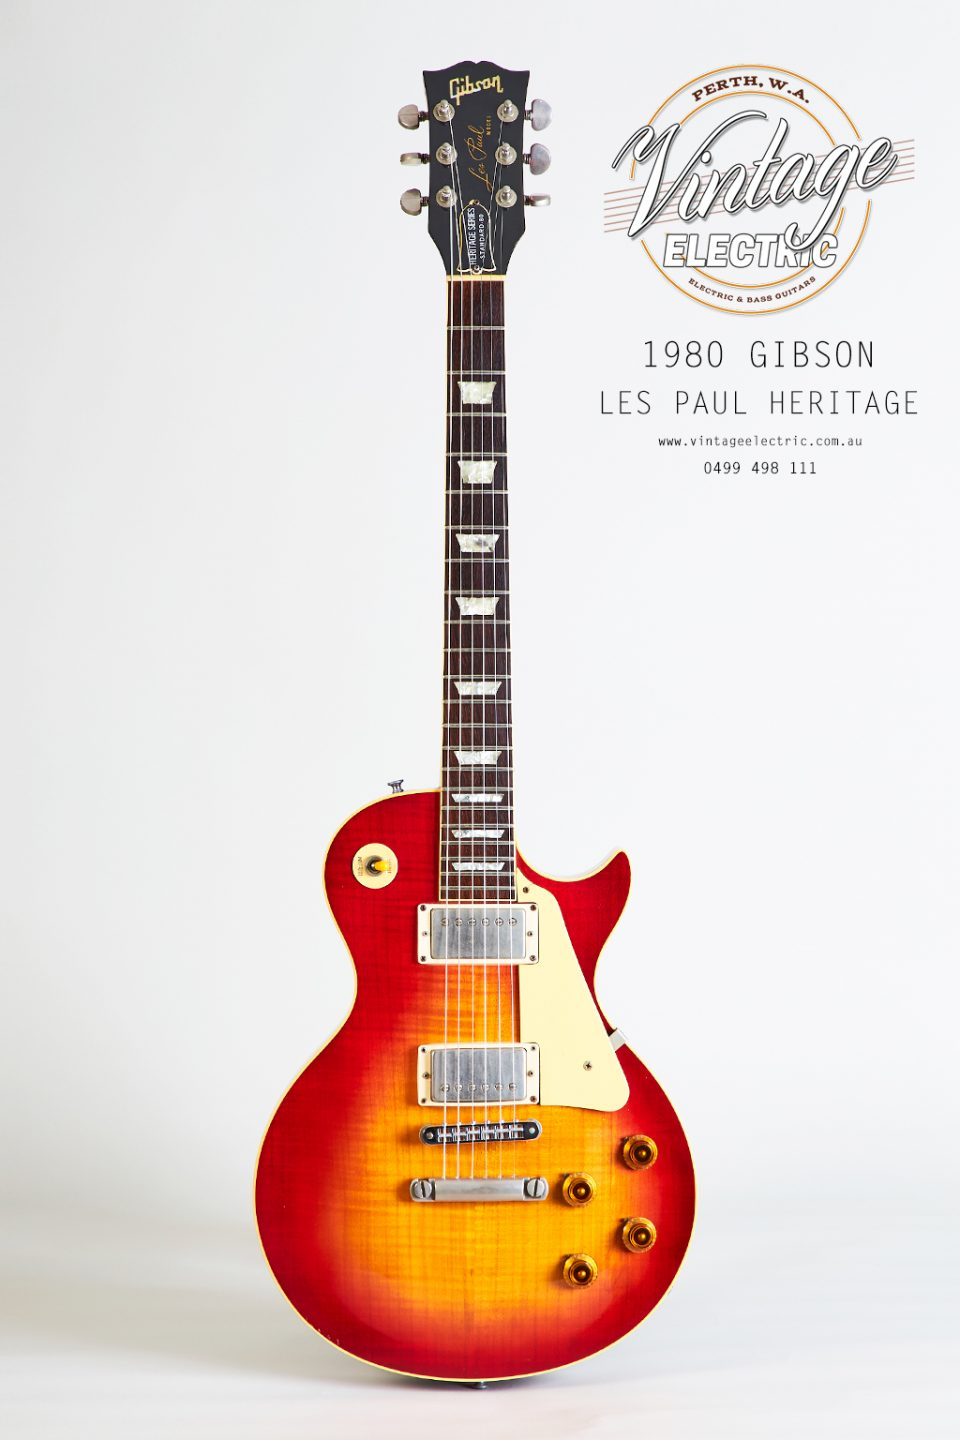 1980 Gibson Les Paul Heritage